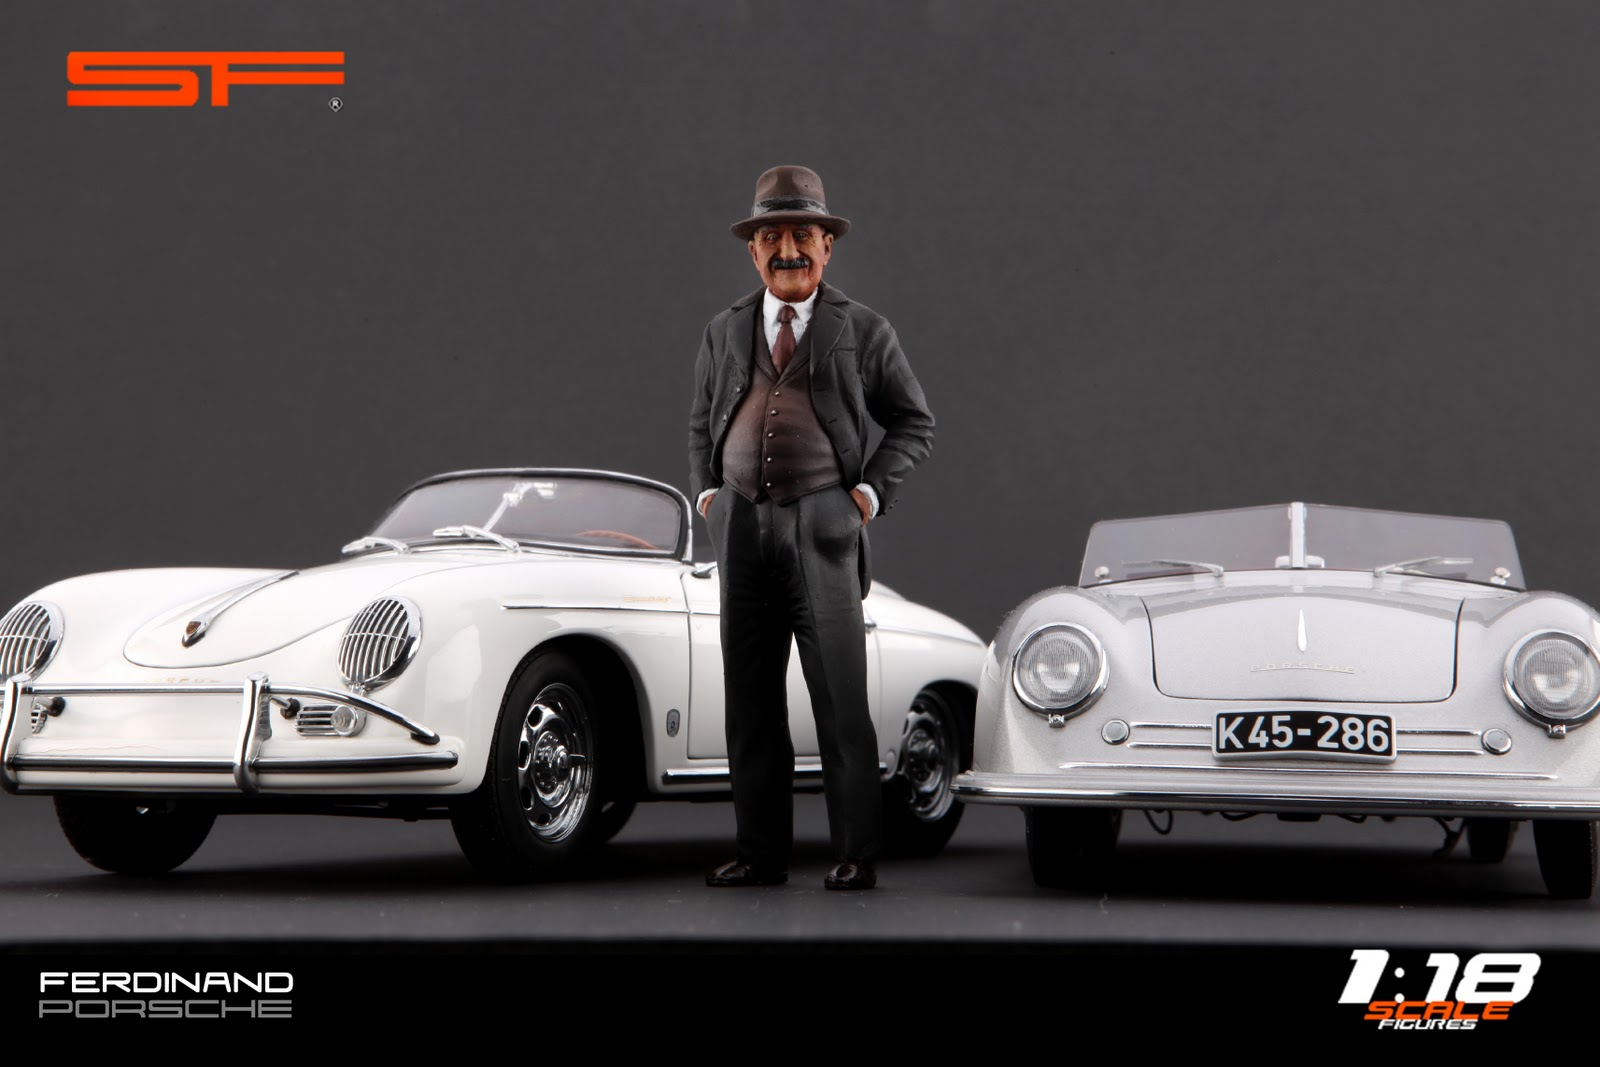 scalefigures ferdinand porsche 1 18 hat. Black Bedroom Furniture Sets. Home Design Ideas